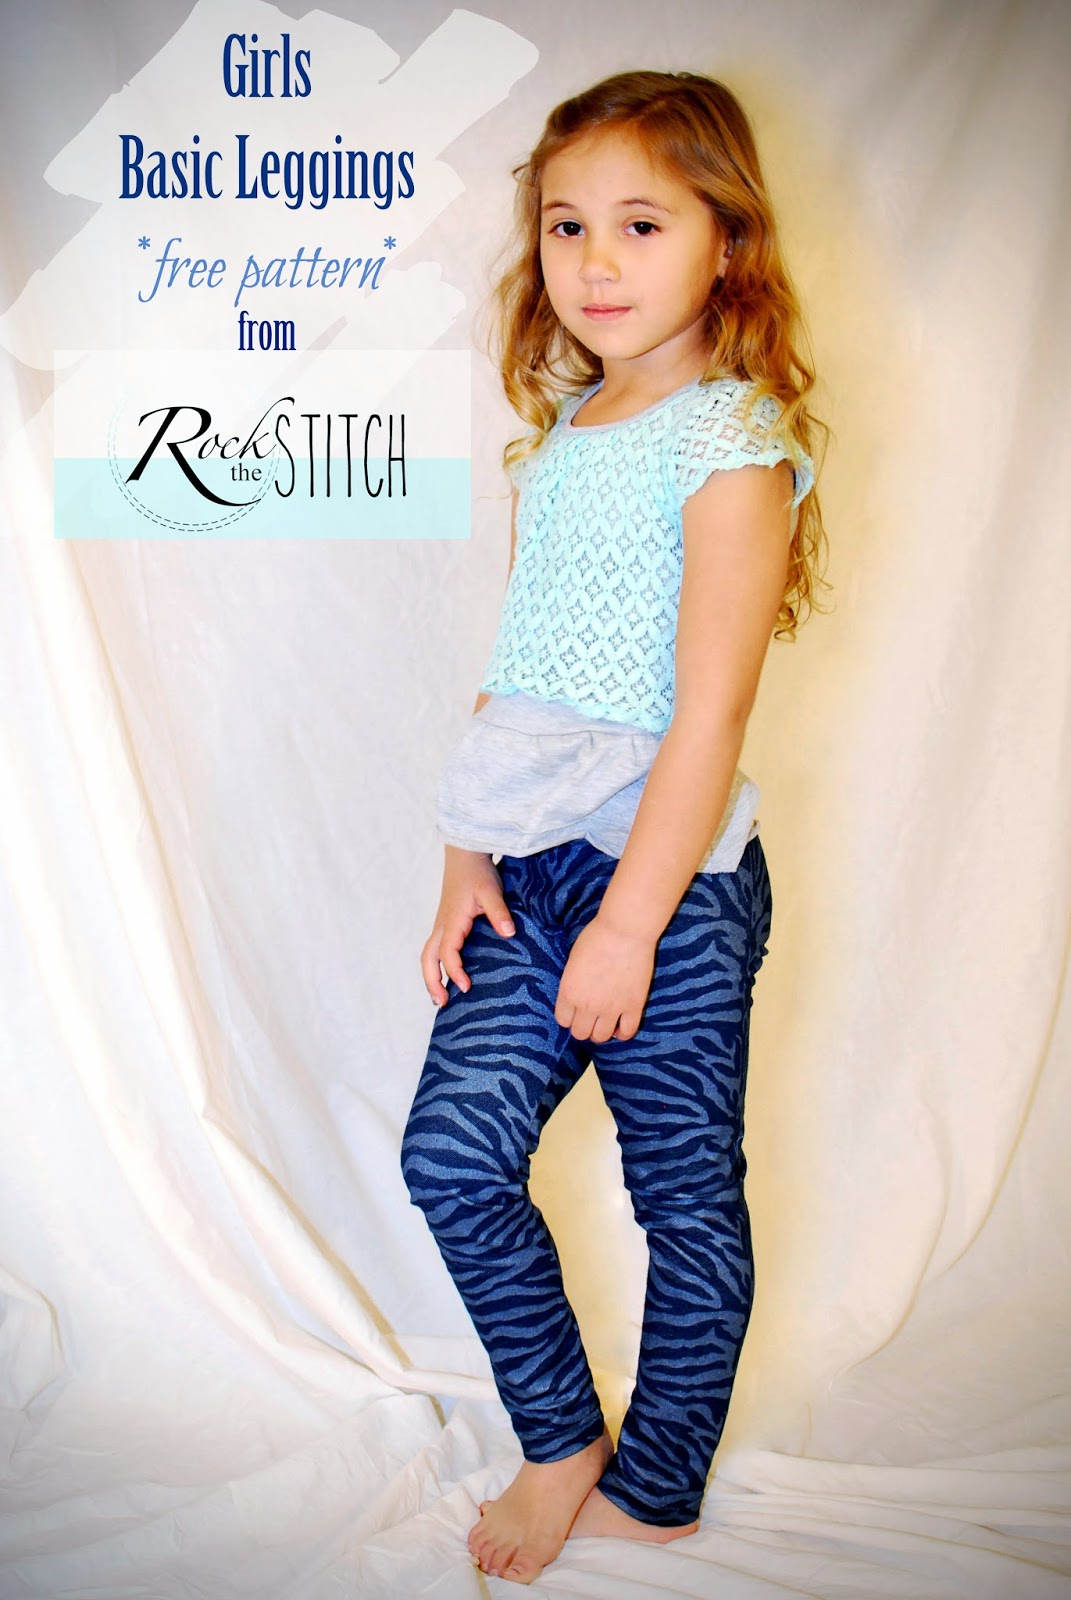 http://rockthestitch.blogspot.com/2014/01/girls-basic-leggings-free-pattern.html